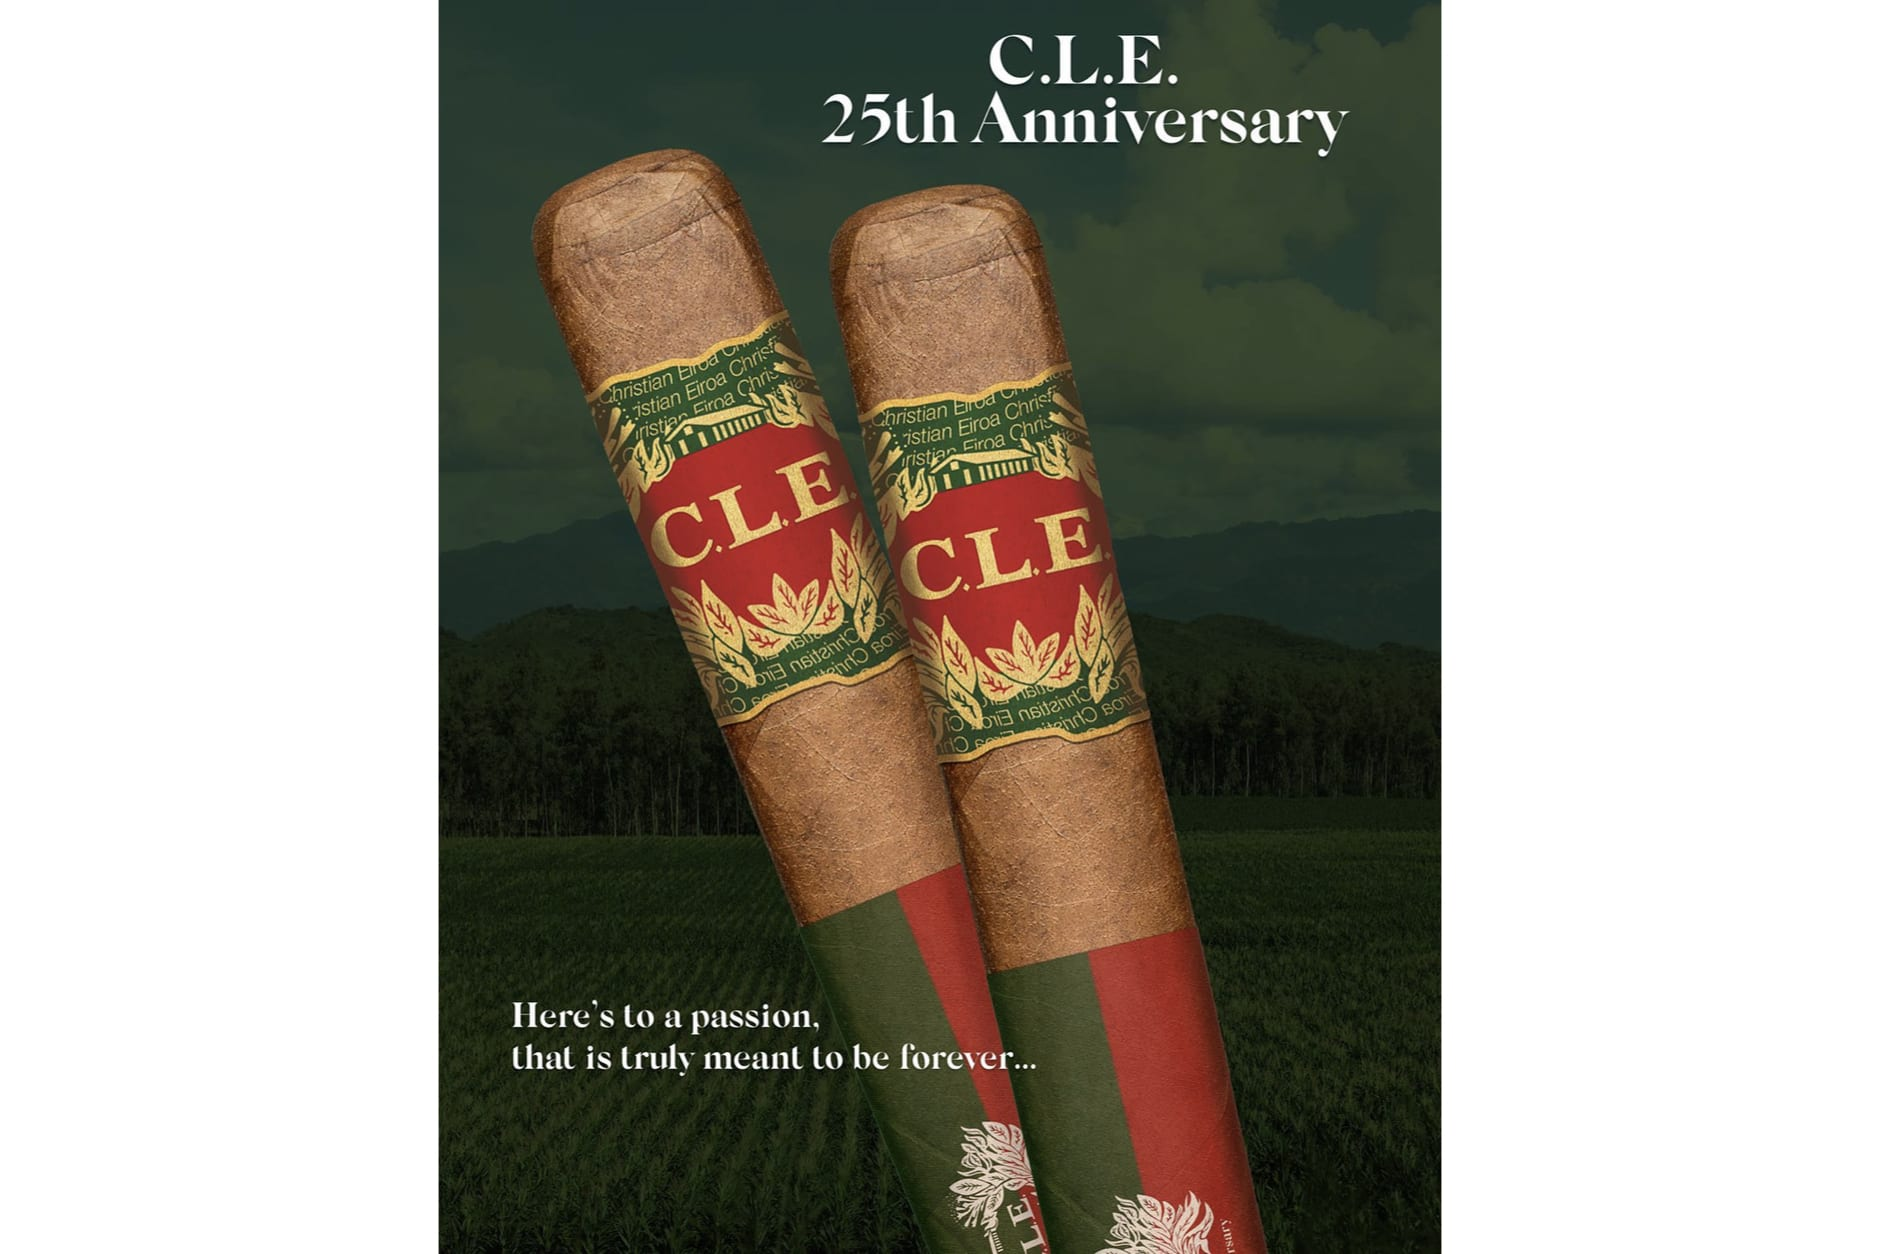 CLE 25th Anniversary Shipping Later This Month Featured Image